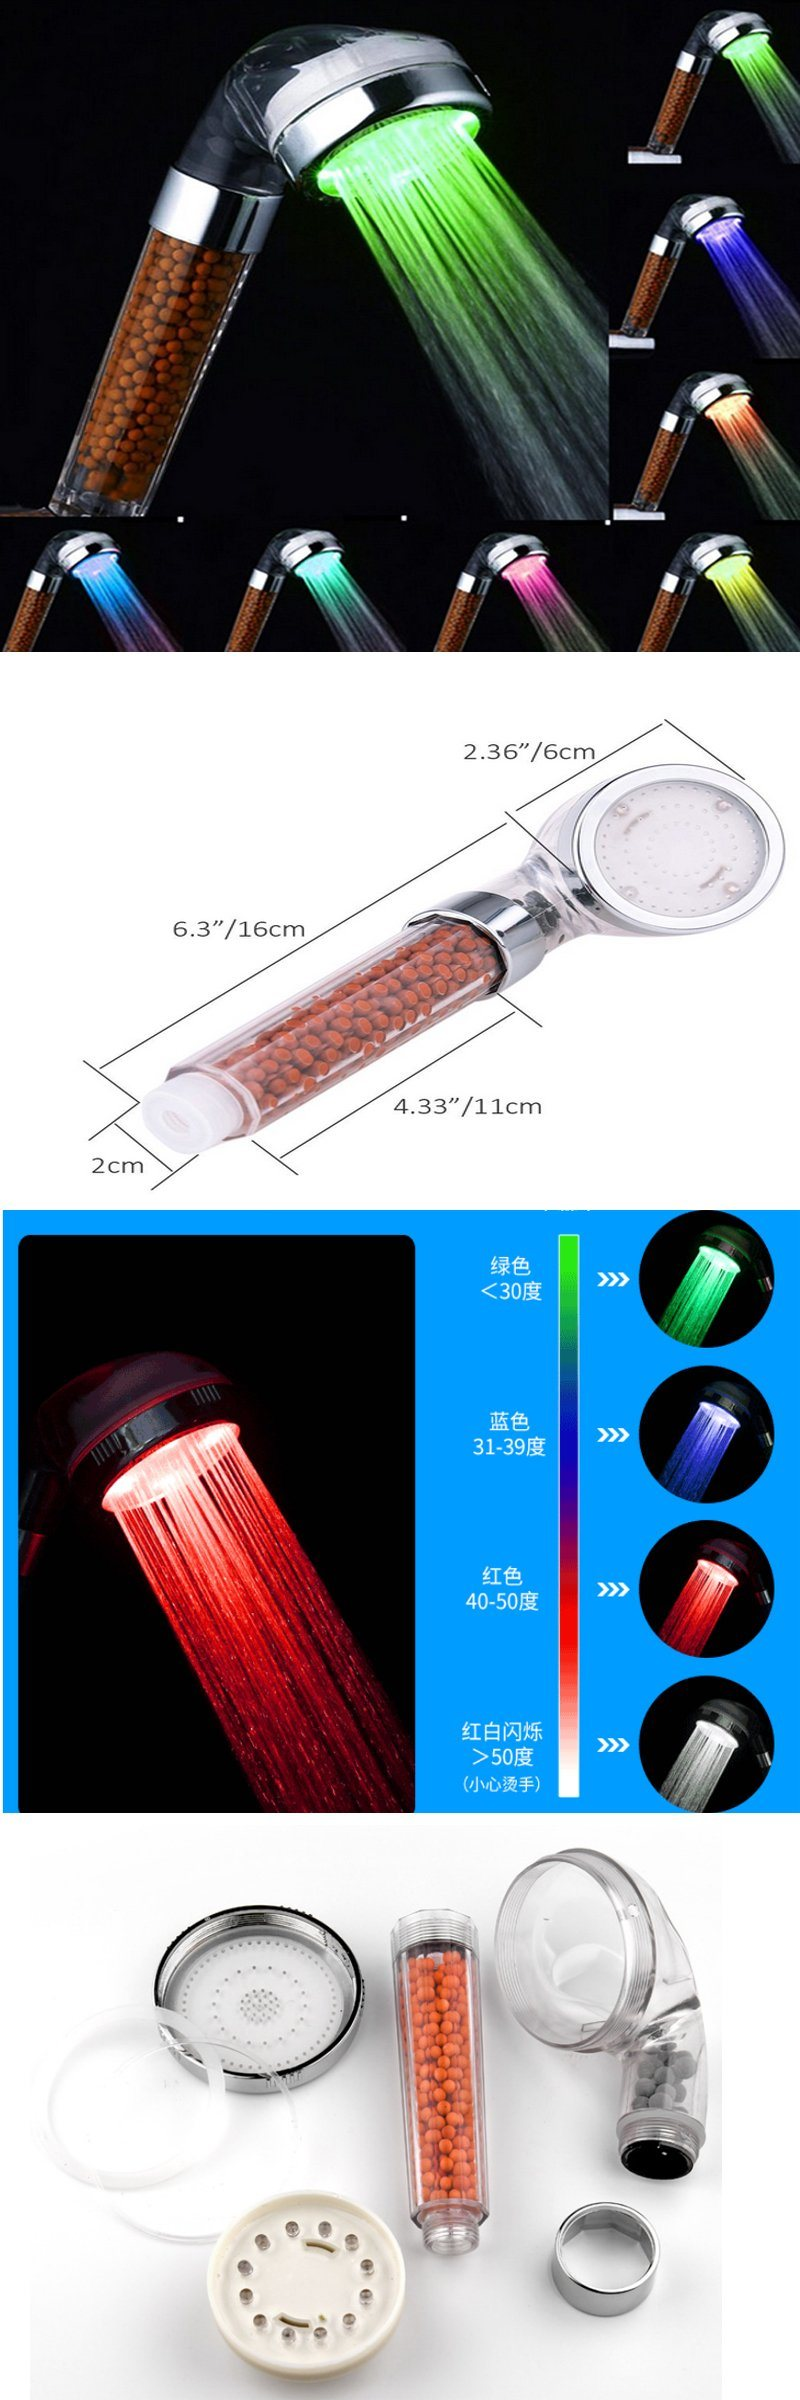 Water Temperature Control LED Changing Square Rainfall Shower Head with 3 Color